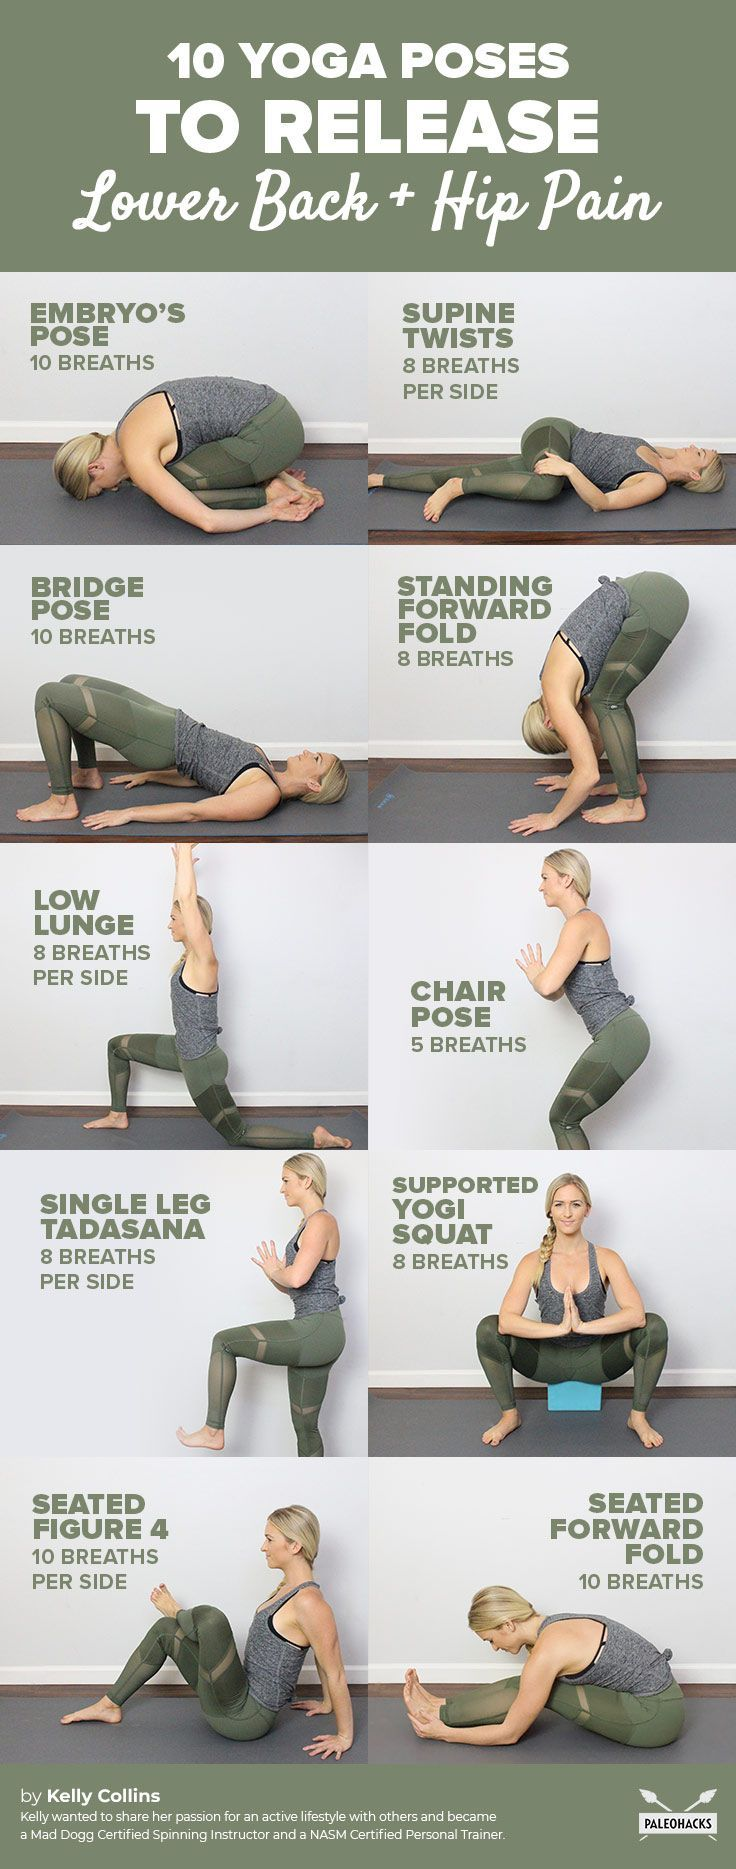 Lower back & hip poses – Vanessa